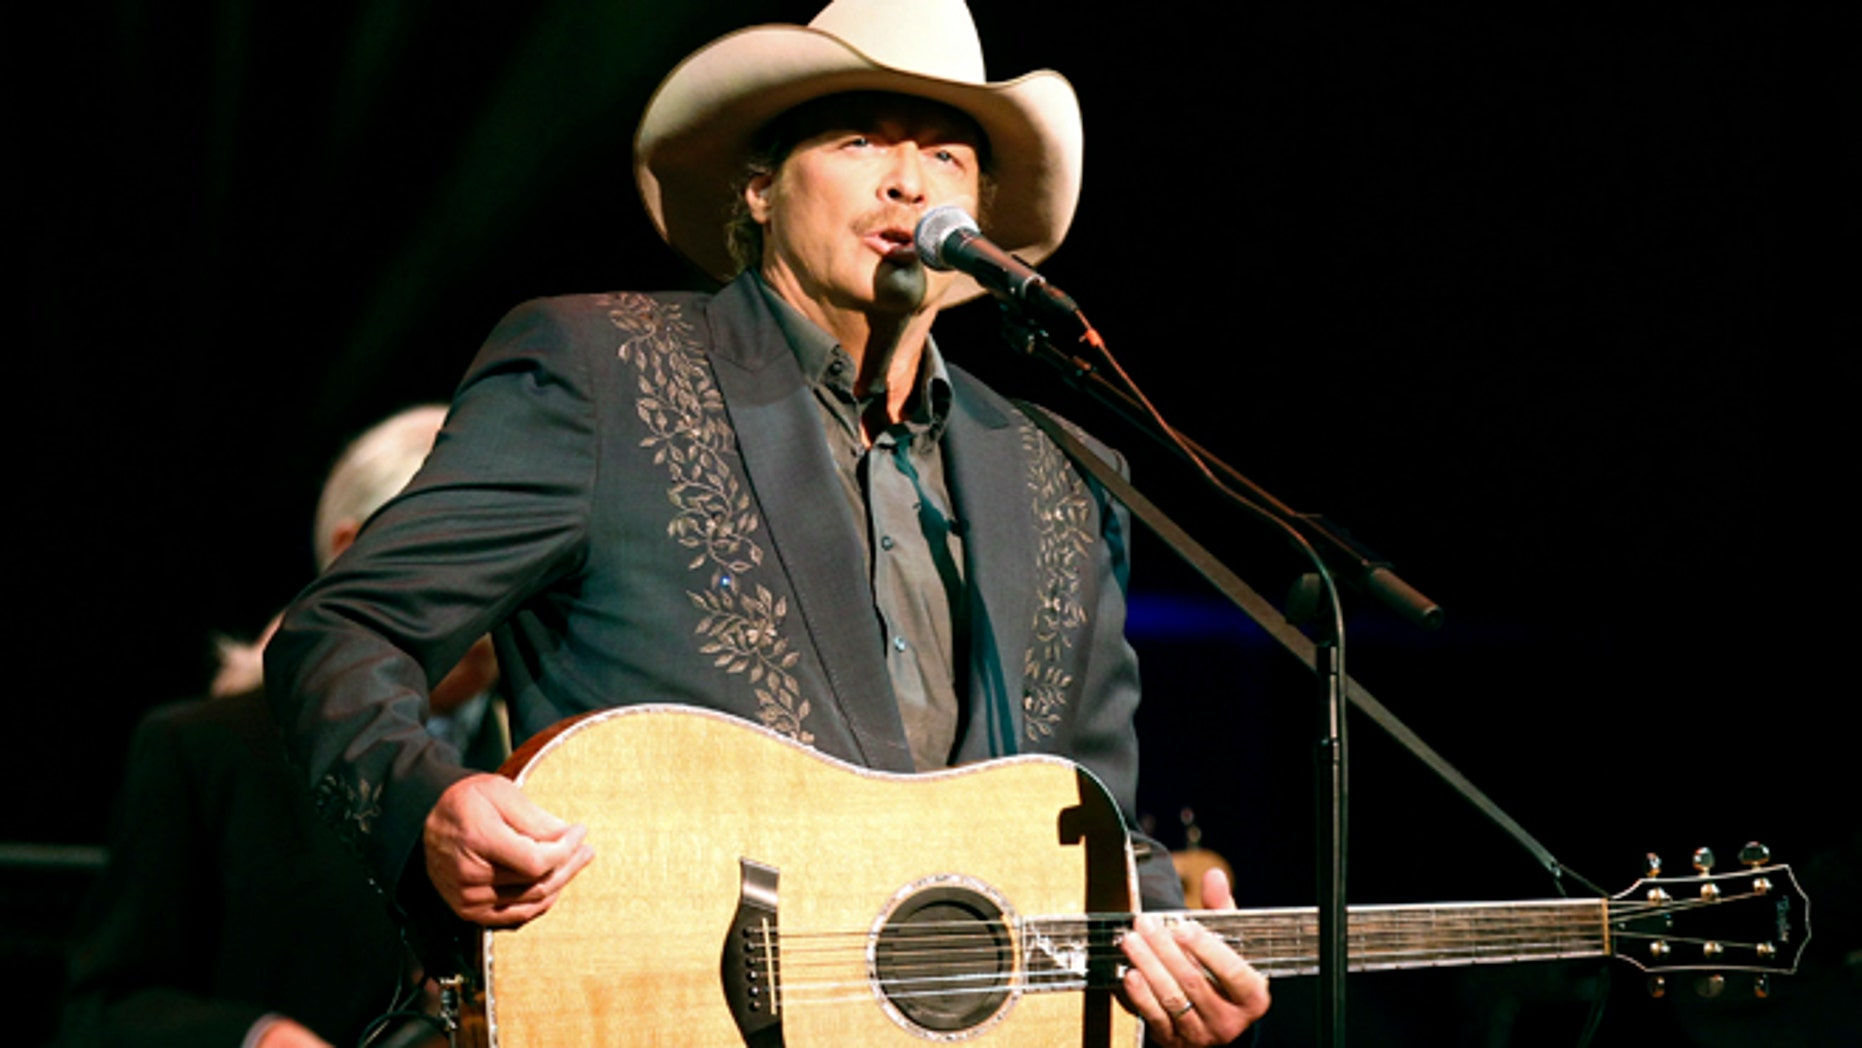 """Singer Alan Jackson performs during """"A Concert for Hope"""" at the Kennedy Center in Washington September 11, 2011 on the 10th anniversary of the 9/11 attacks."""